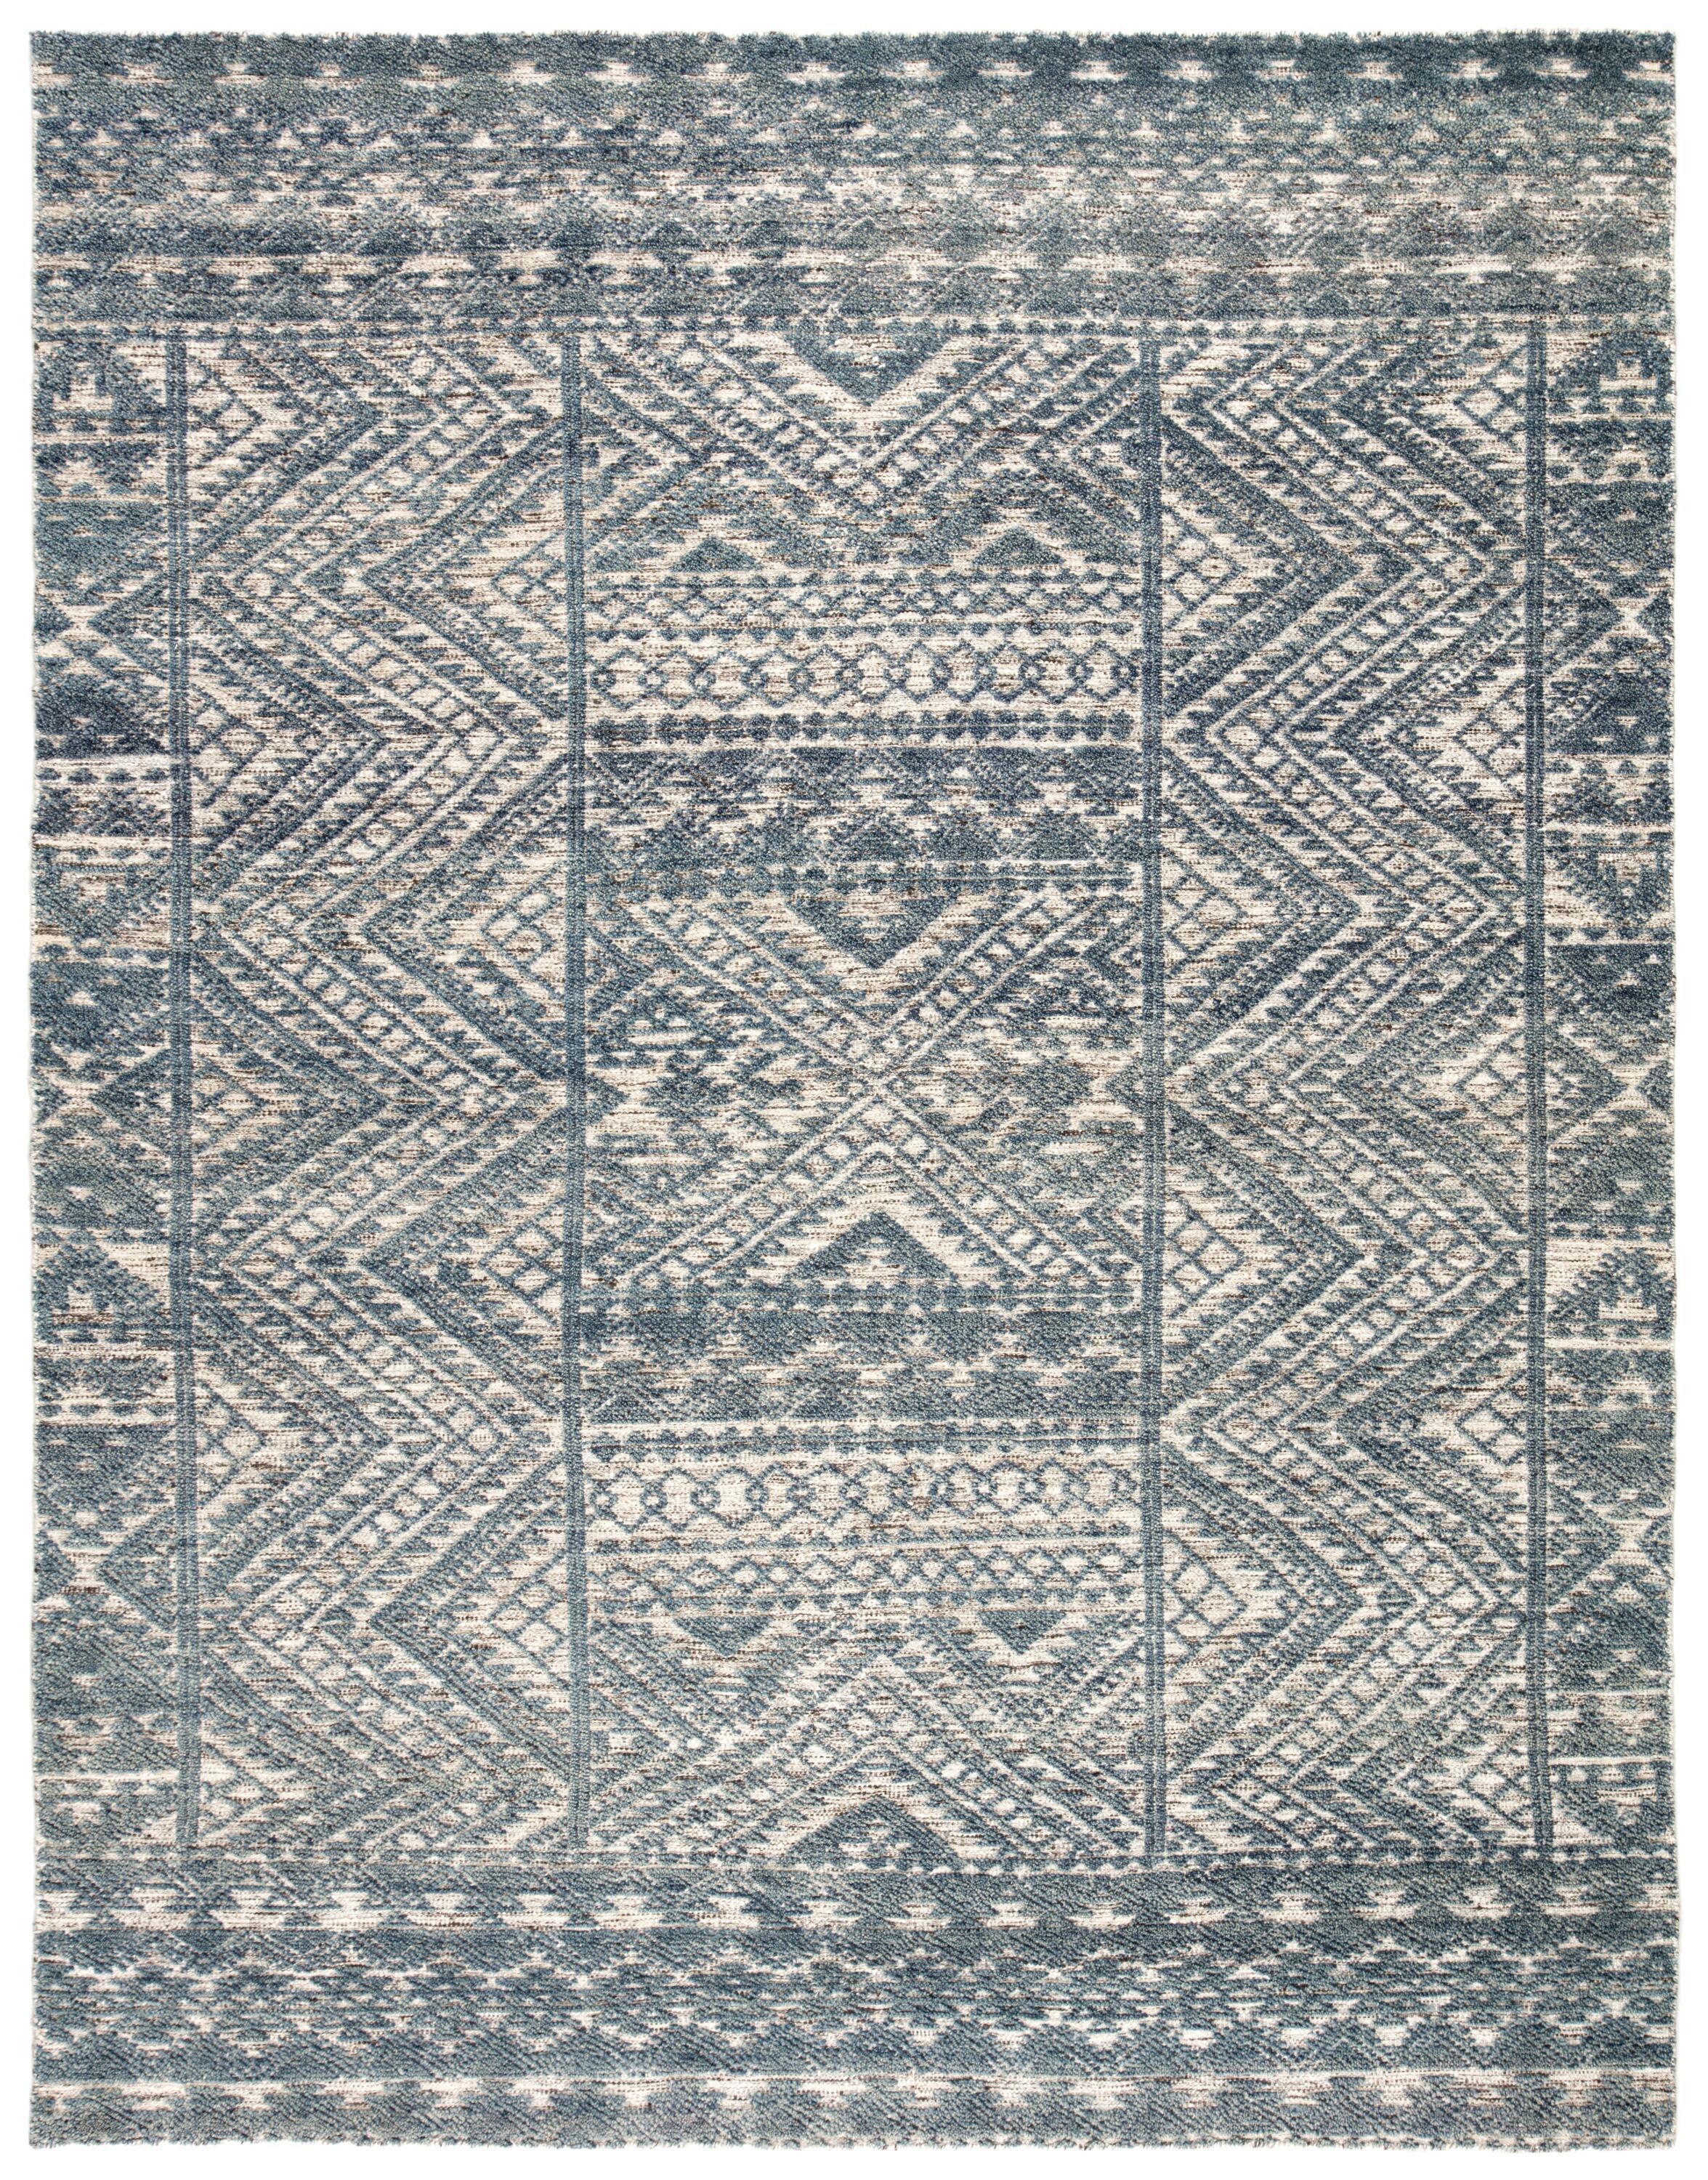 Prentice Hand Knotted Geometric Blue Ivory Area Rug Rugs Area Rug Design Rug Direct